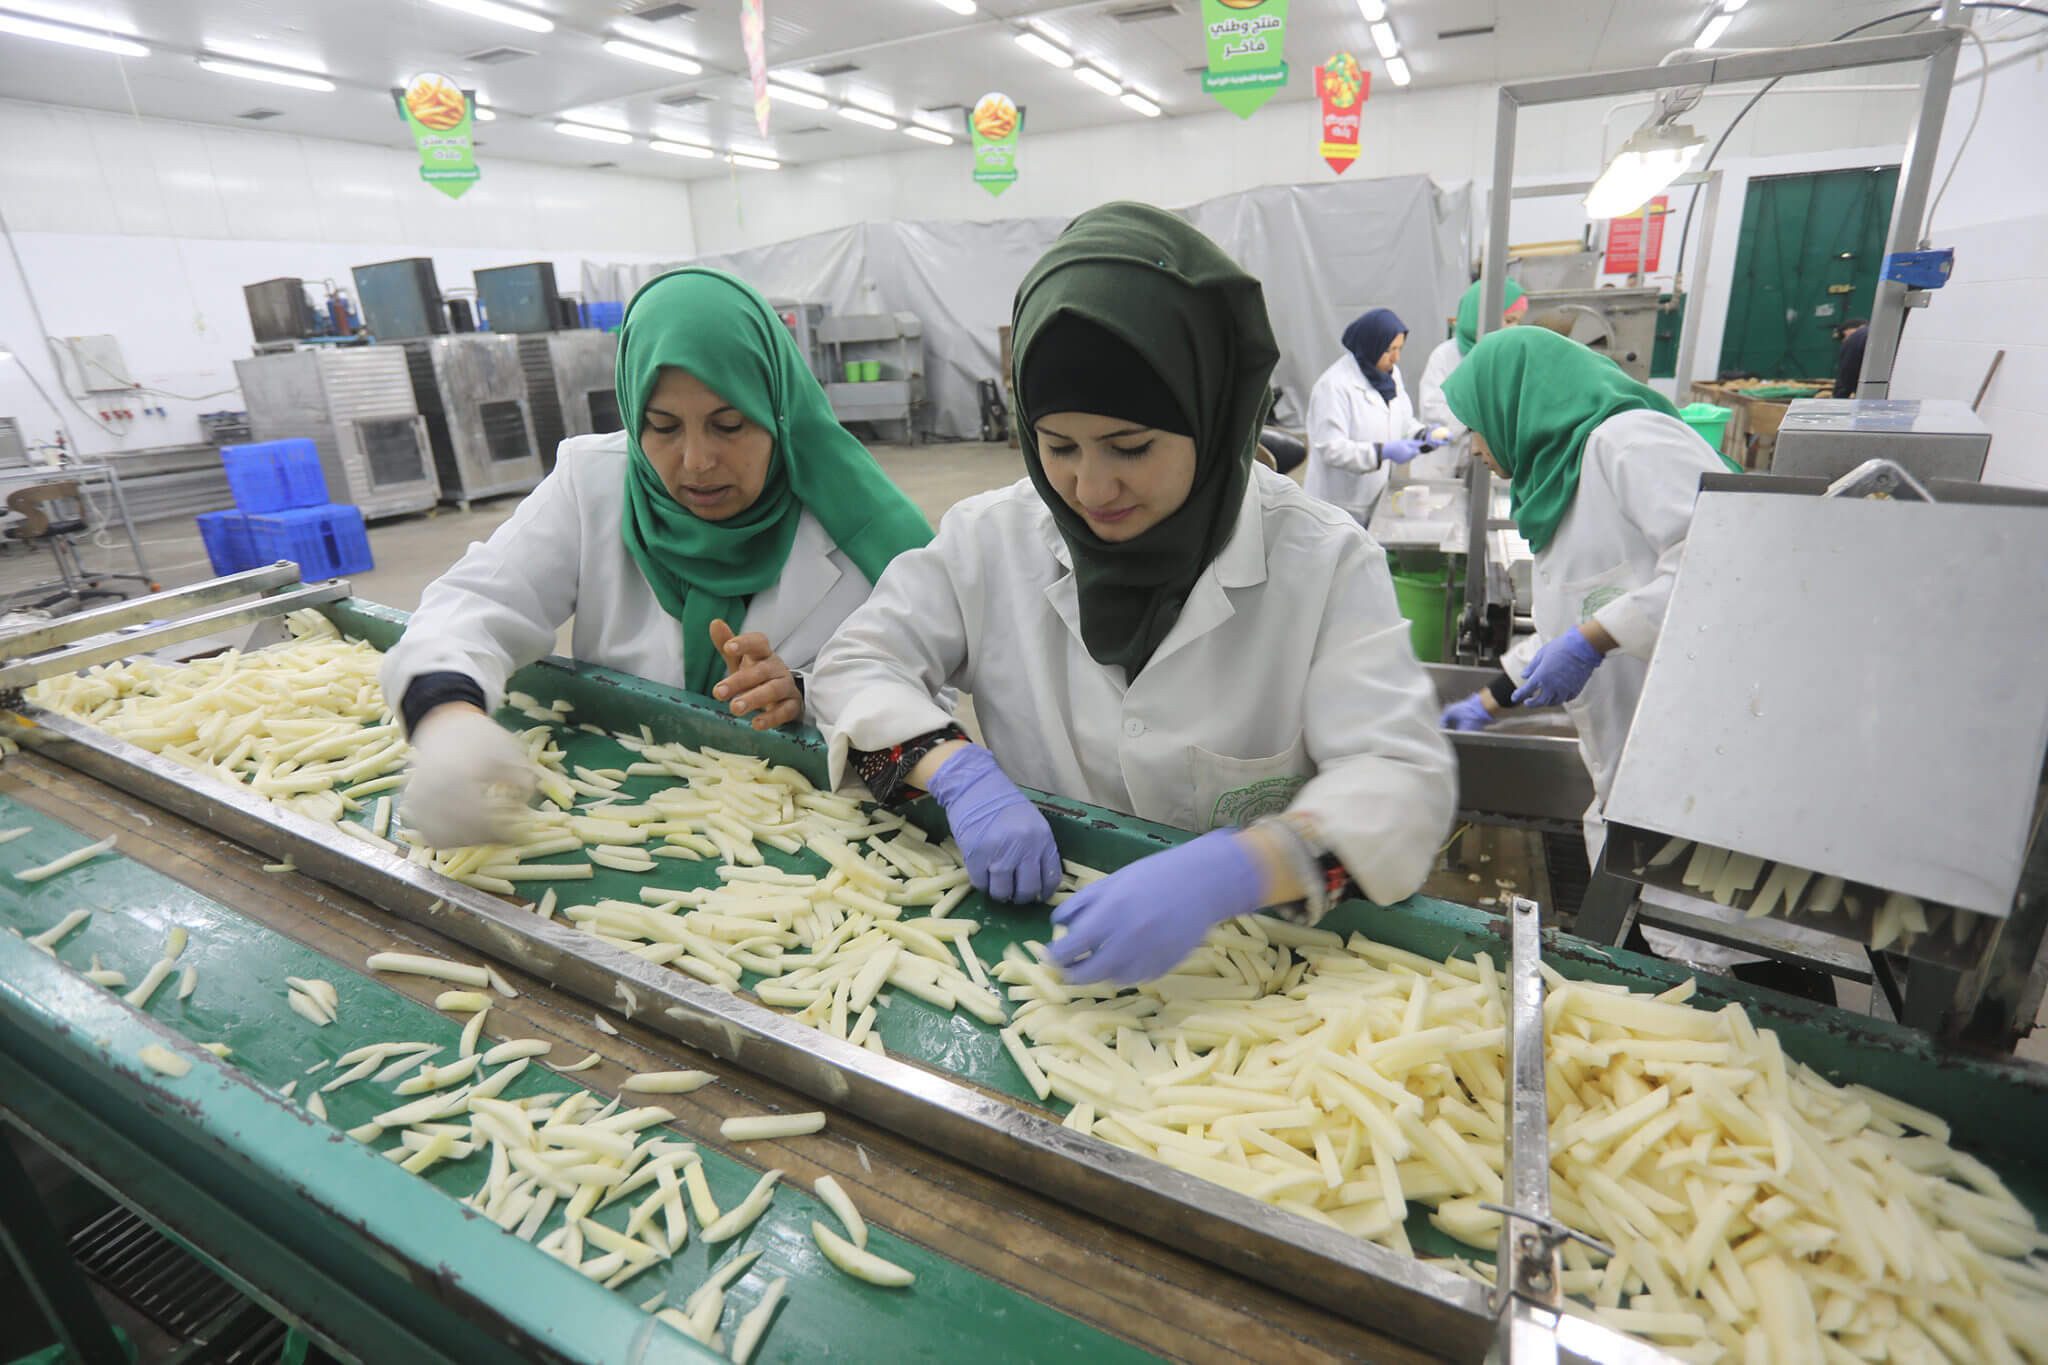 Palestinian woman weighs french fries at the Rosetta factory in northern Gaza